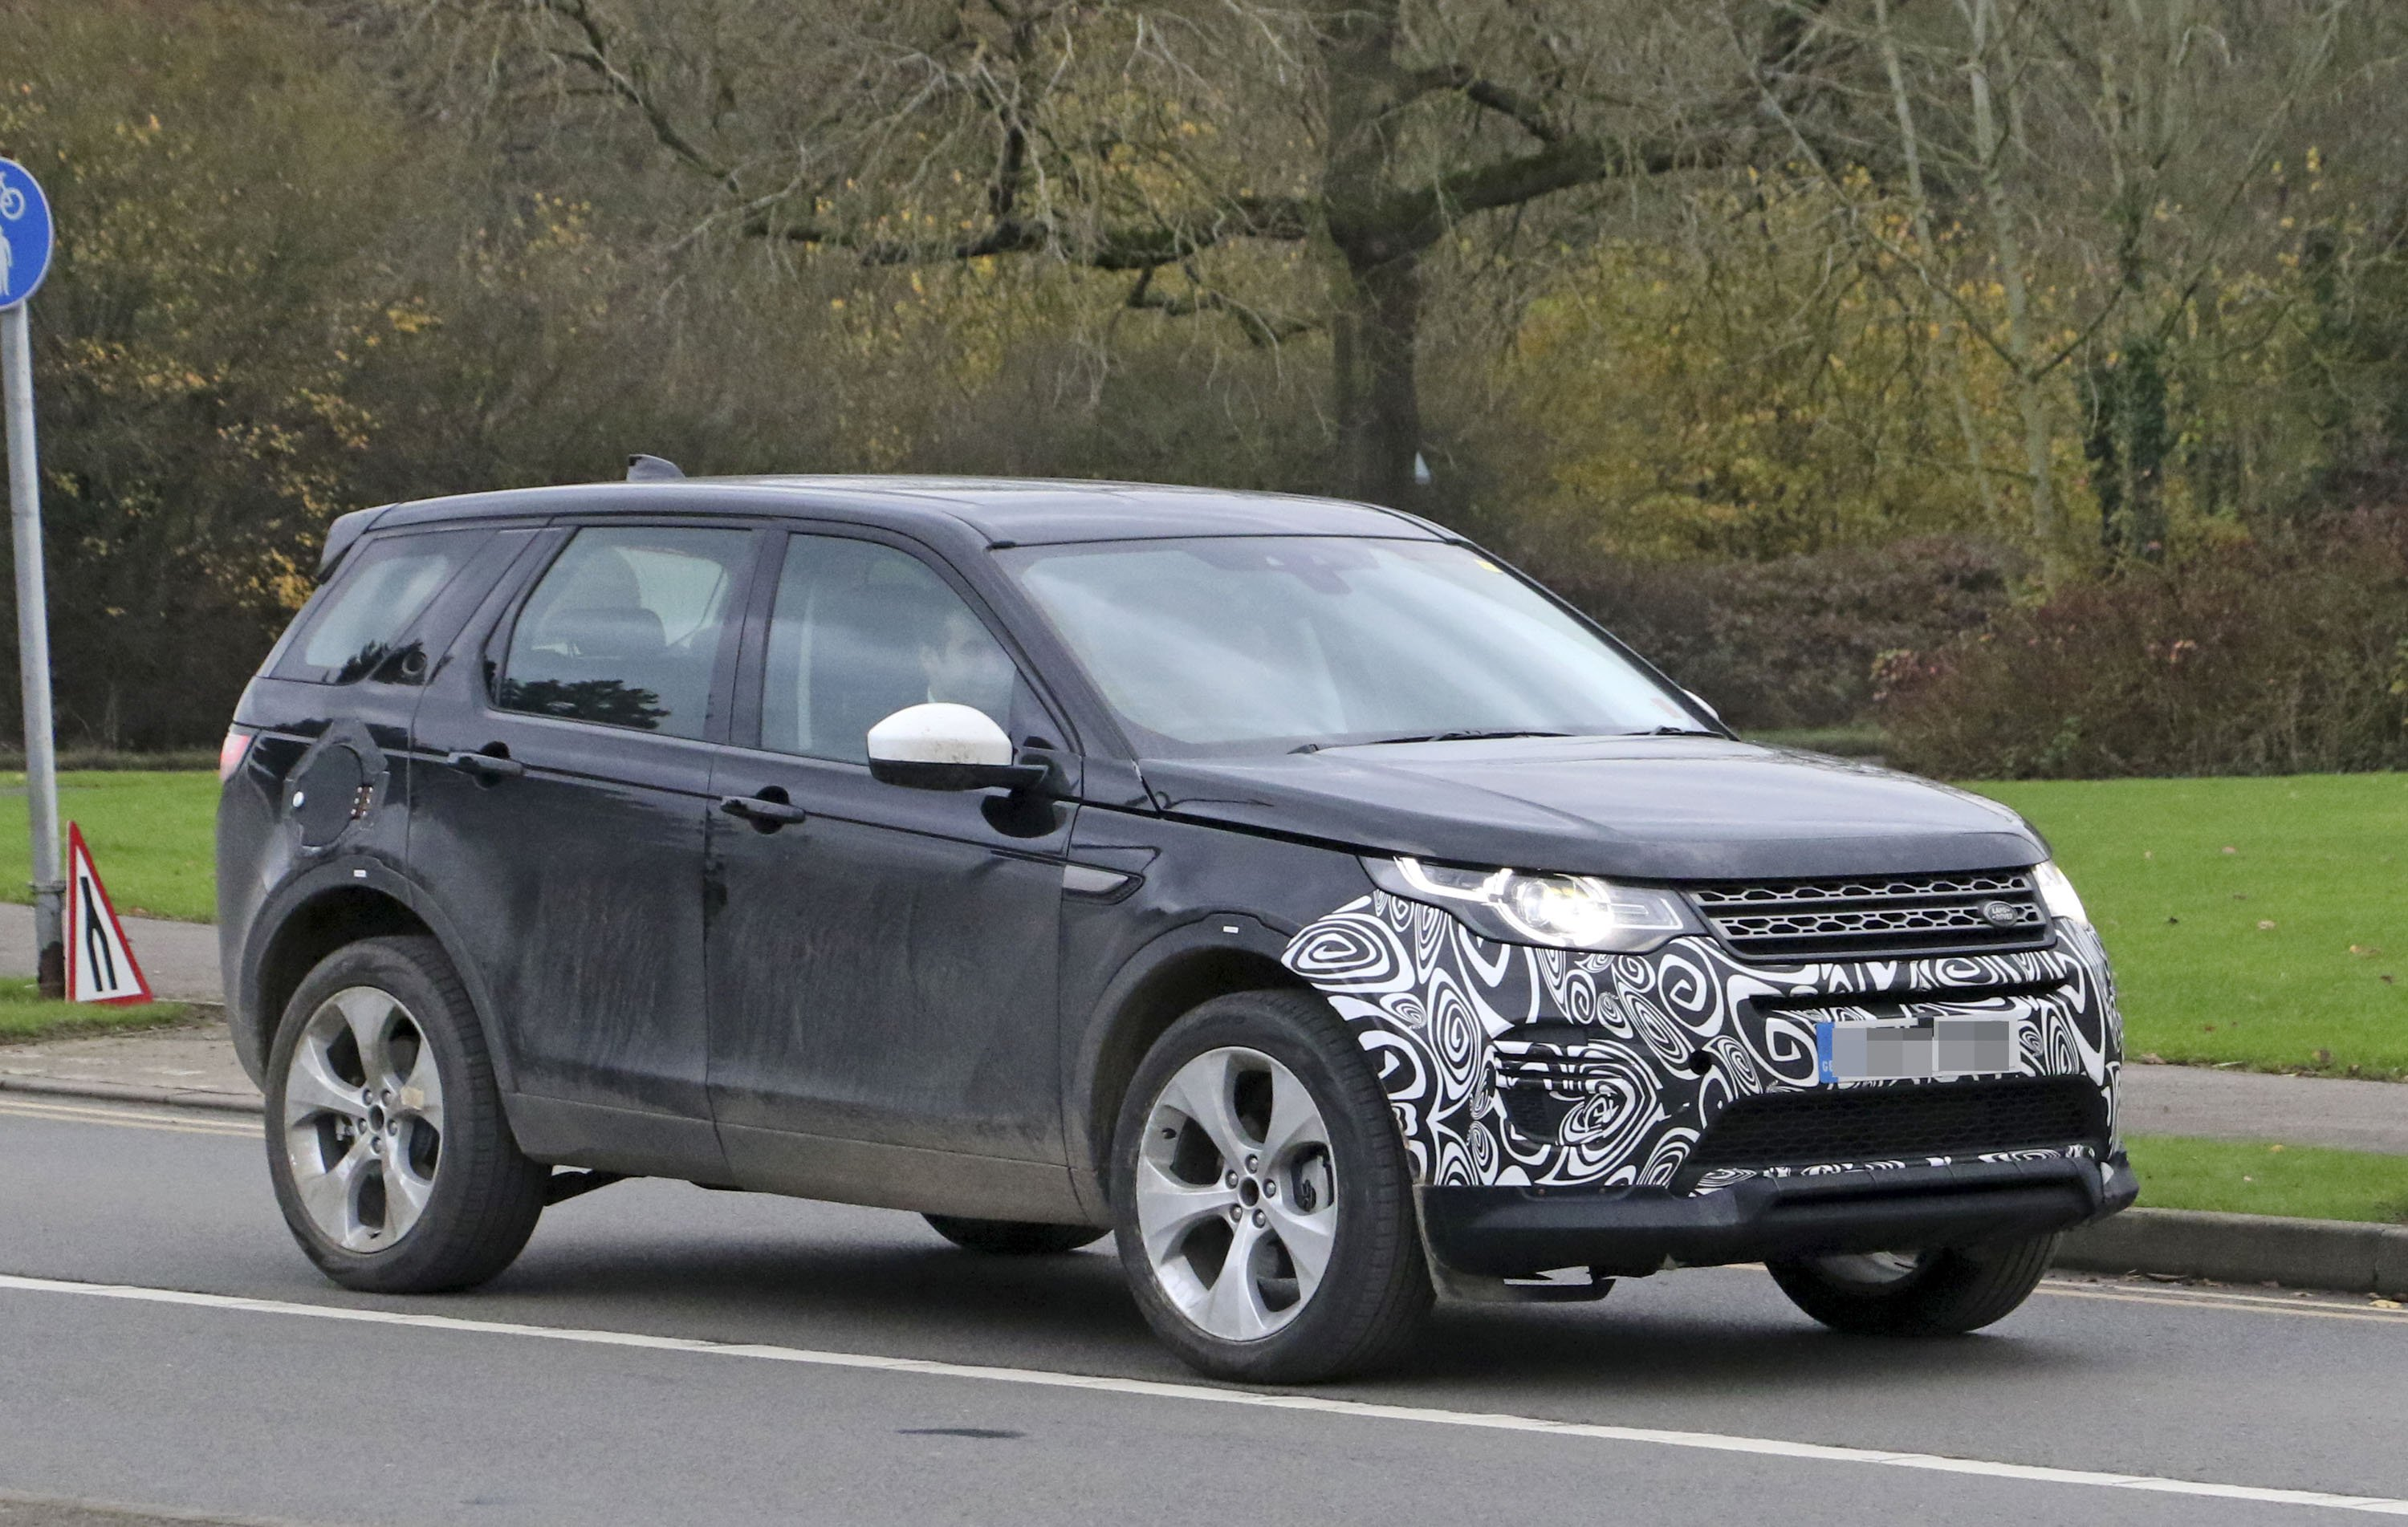 63 The 2020 Land Rover Discovery Exterior